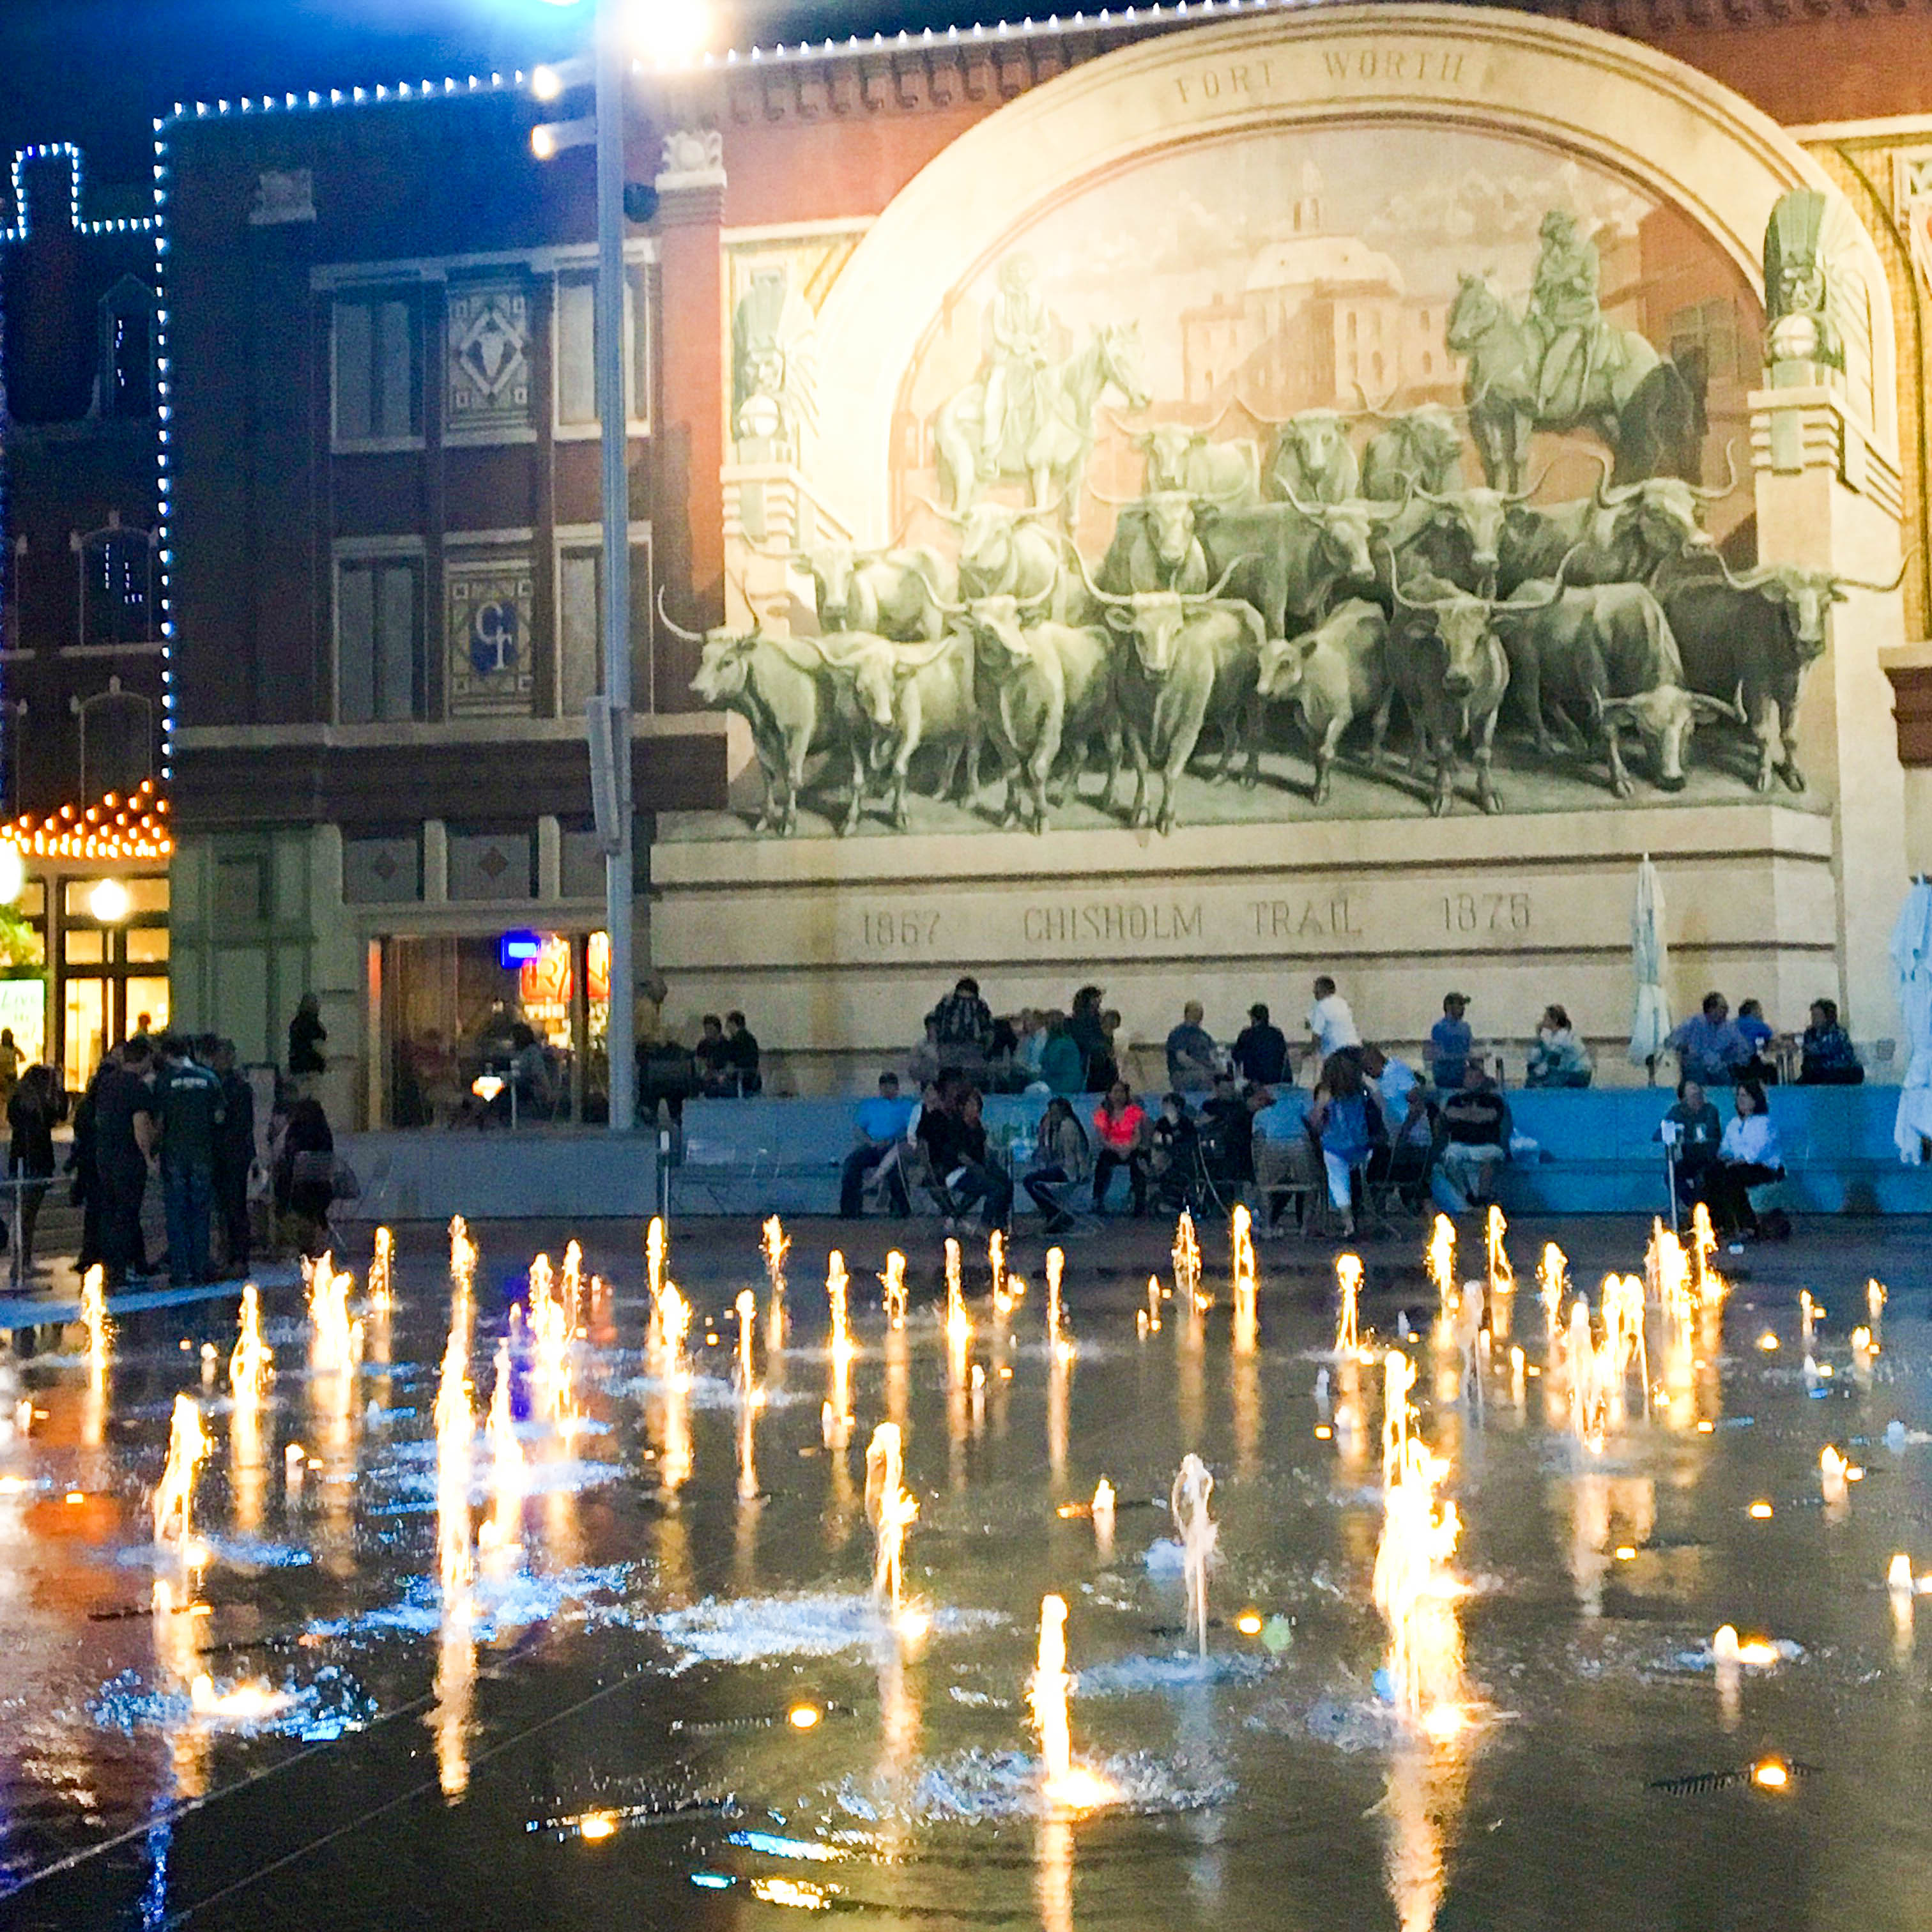 Fort Worth's Sundance Square at night when staying the weekend for the DFW Writers' Conference